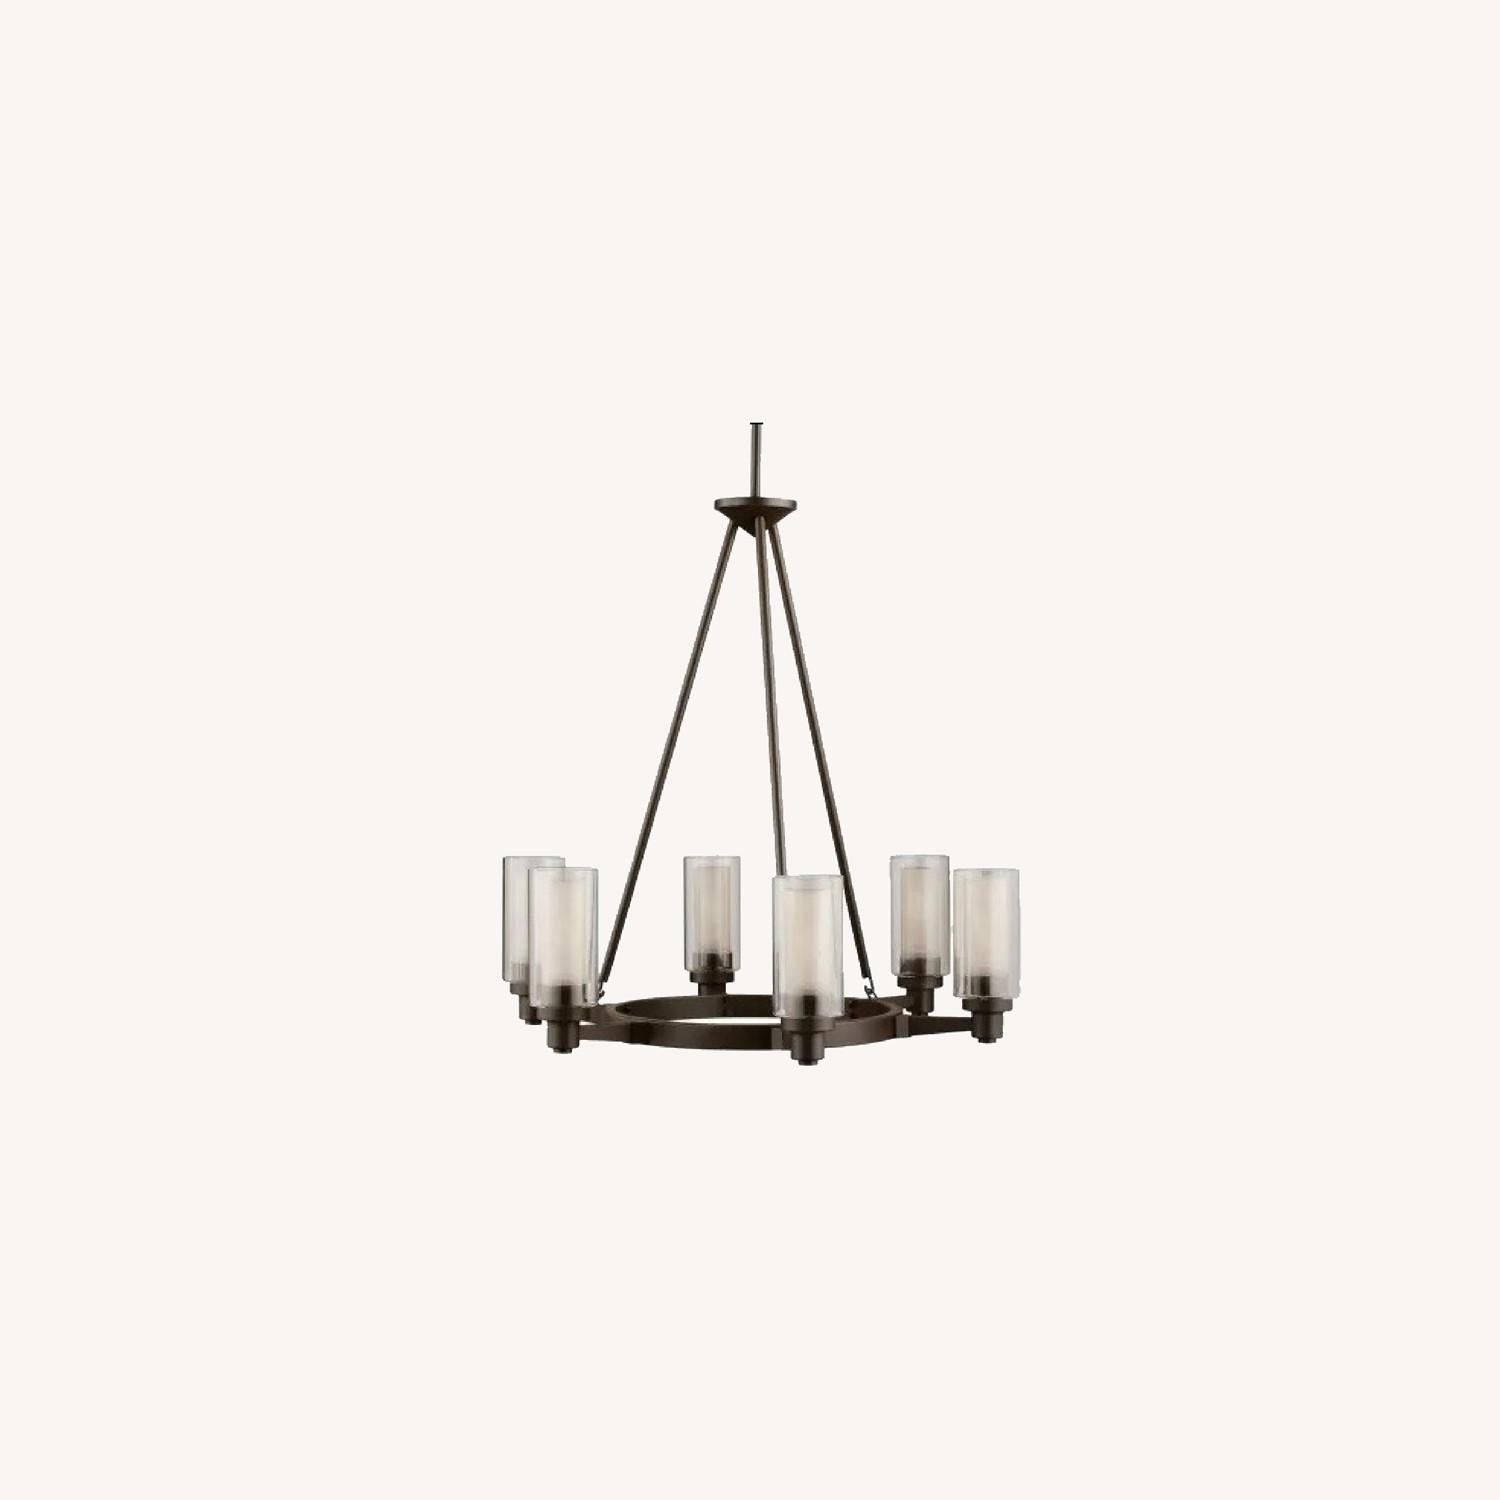 Kichler 6 Light 26 Chandelier - image-0